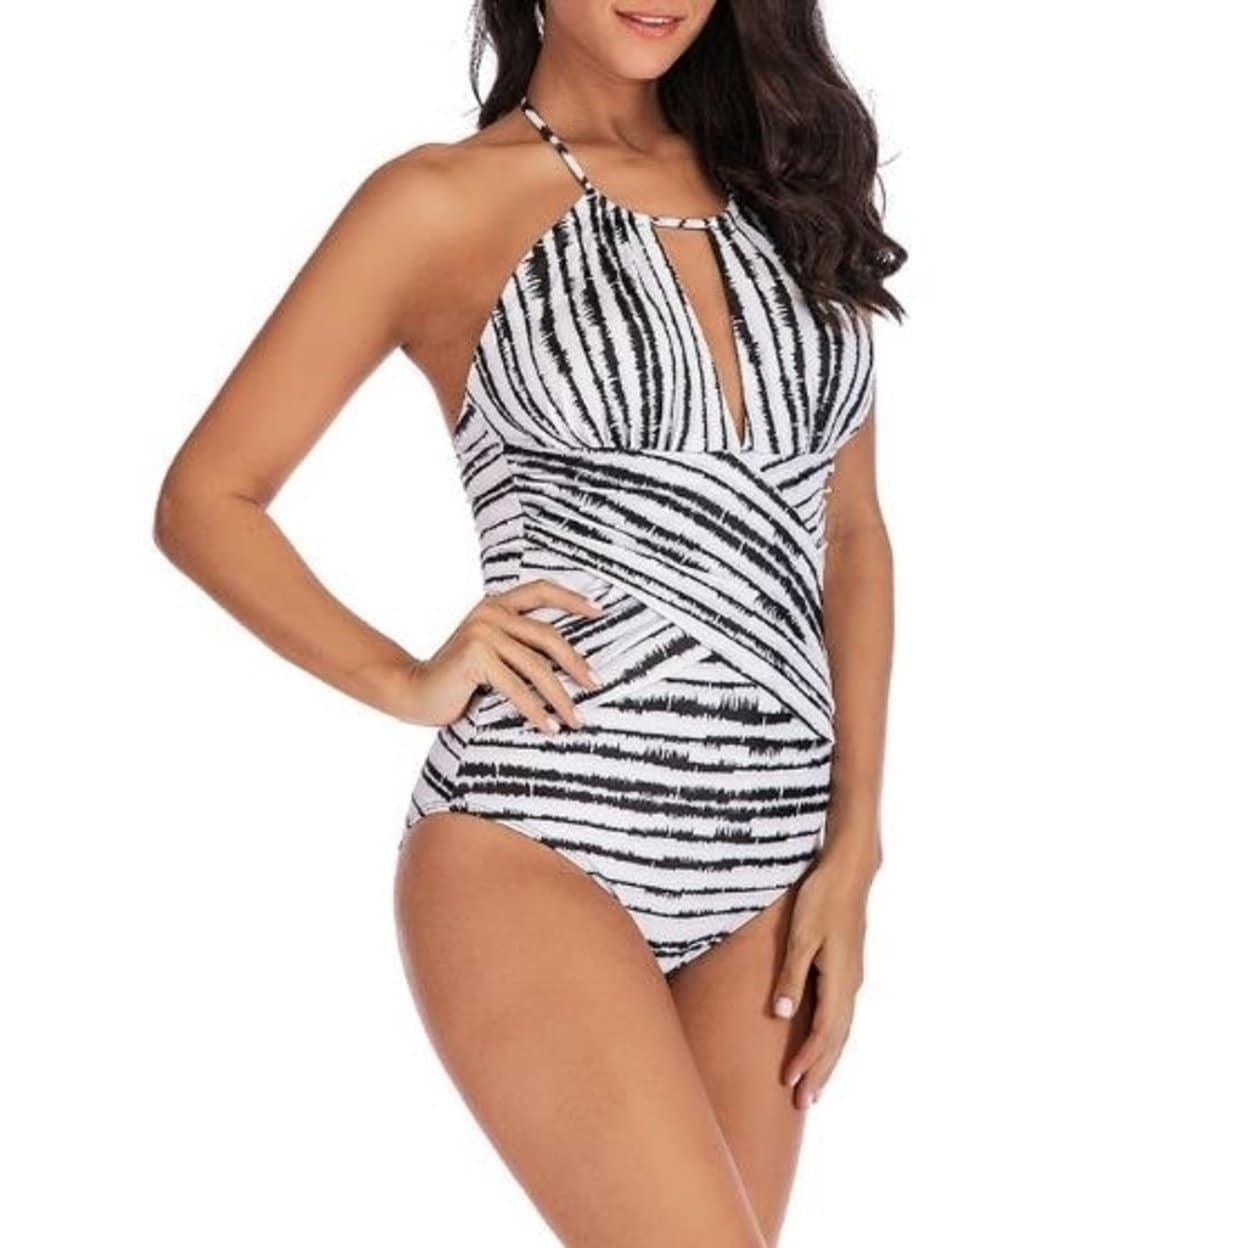 fa3bb0a5b478b Shop One Piece Swimsuits for Women Slimming Monokini Tummy Control Swimwear  Plus Size Bathing Suits V Neckline Halter - On Sale - Free Shipping On  Orders ...